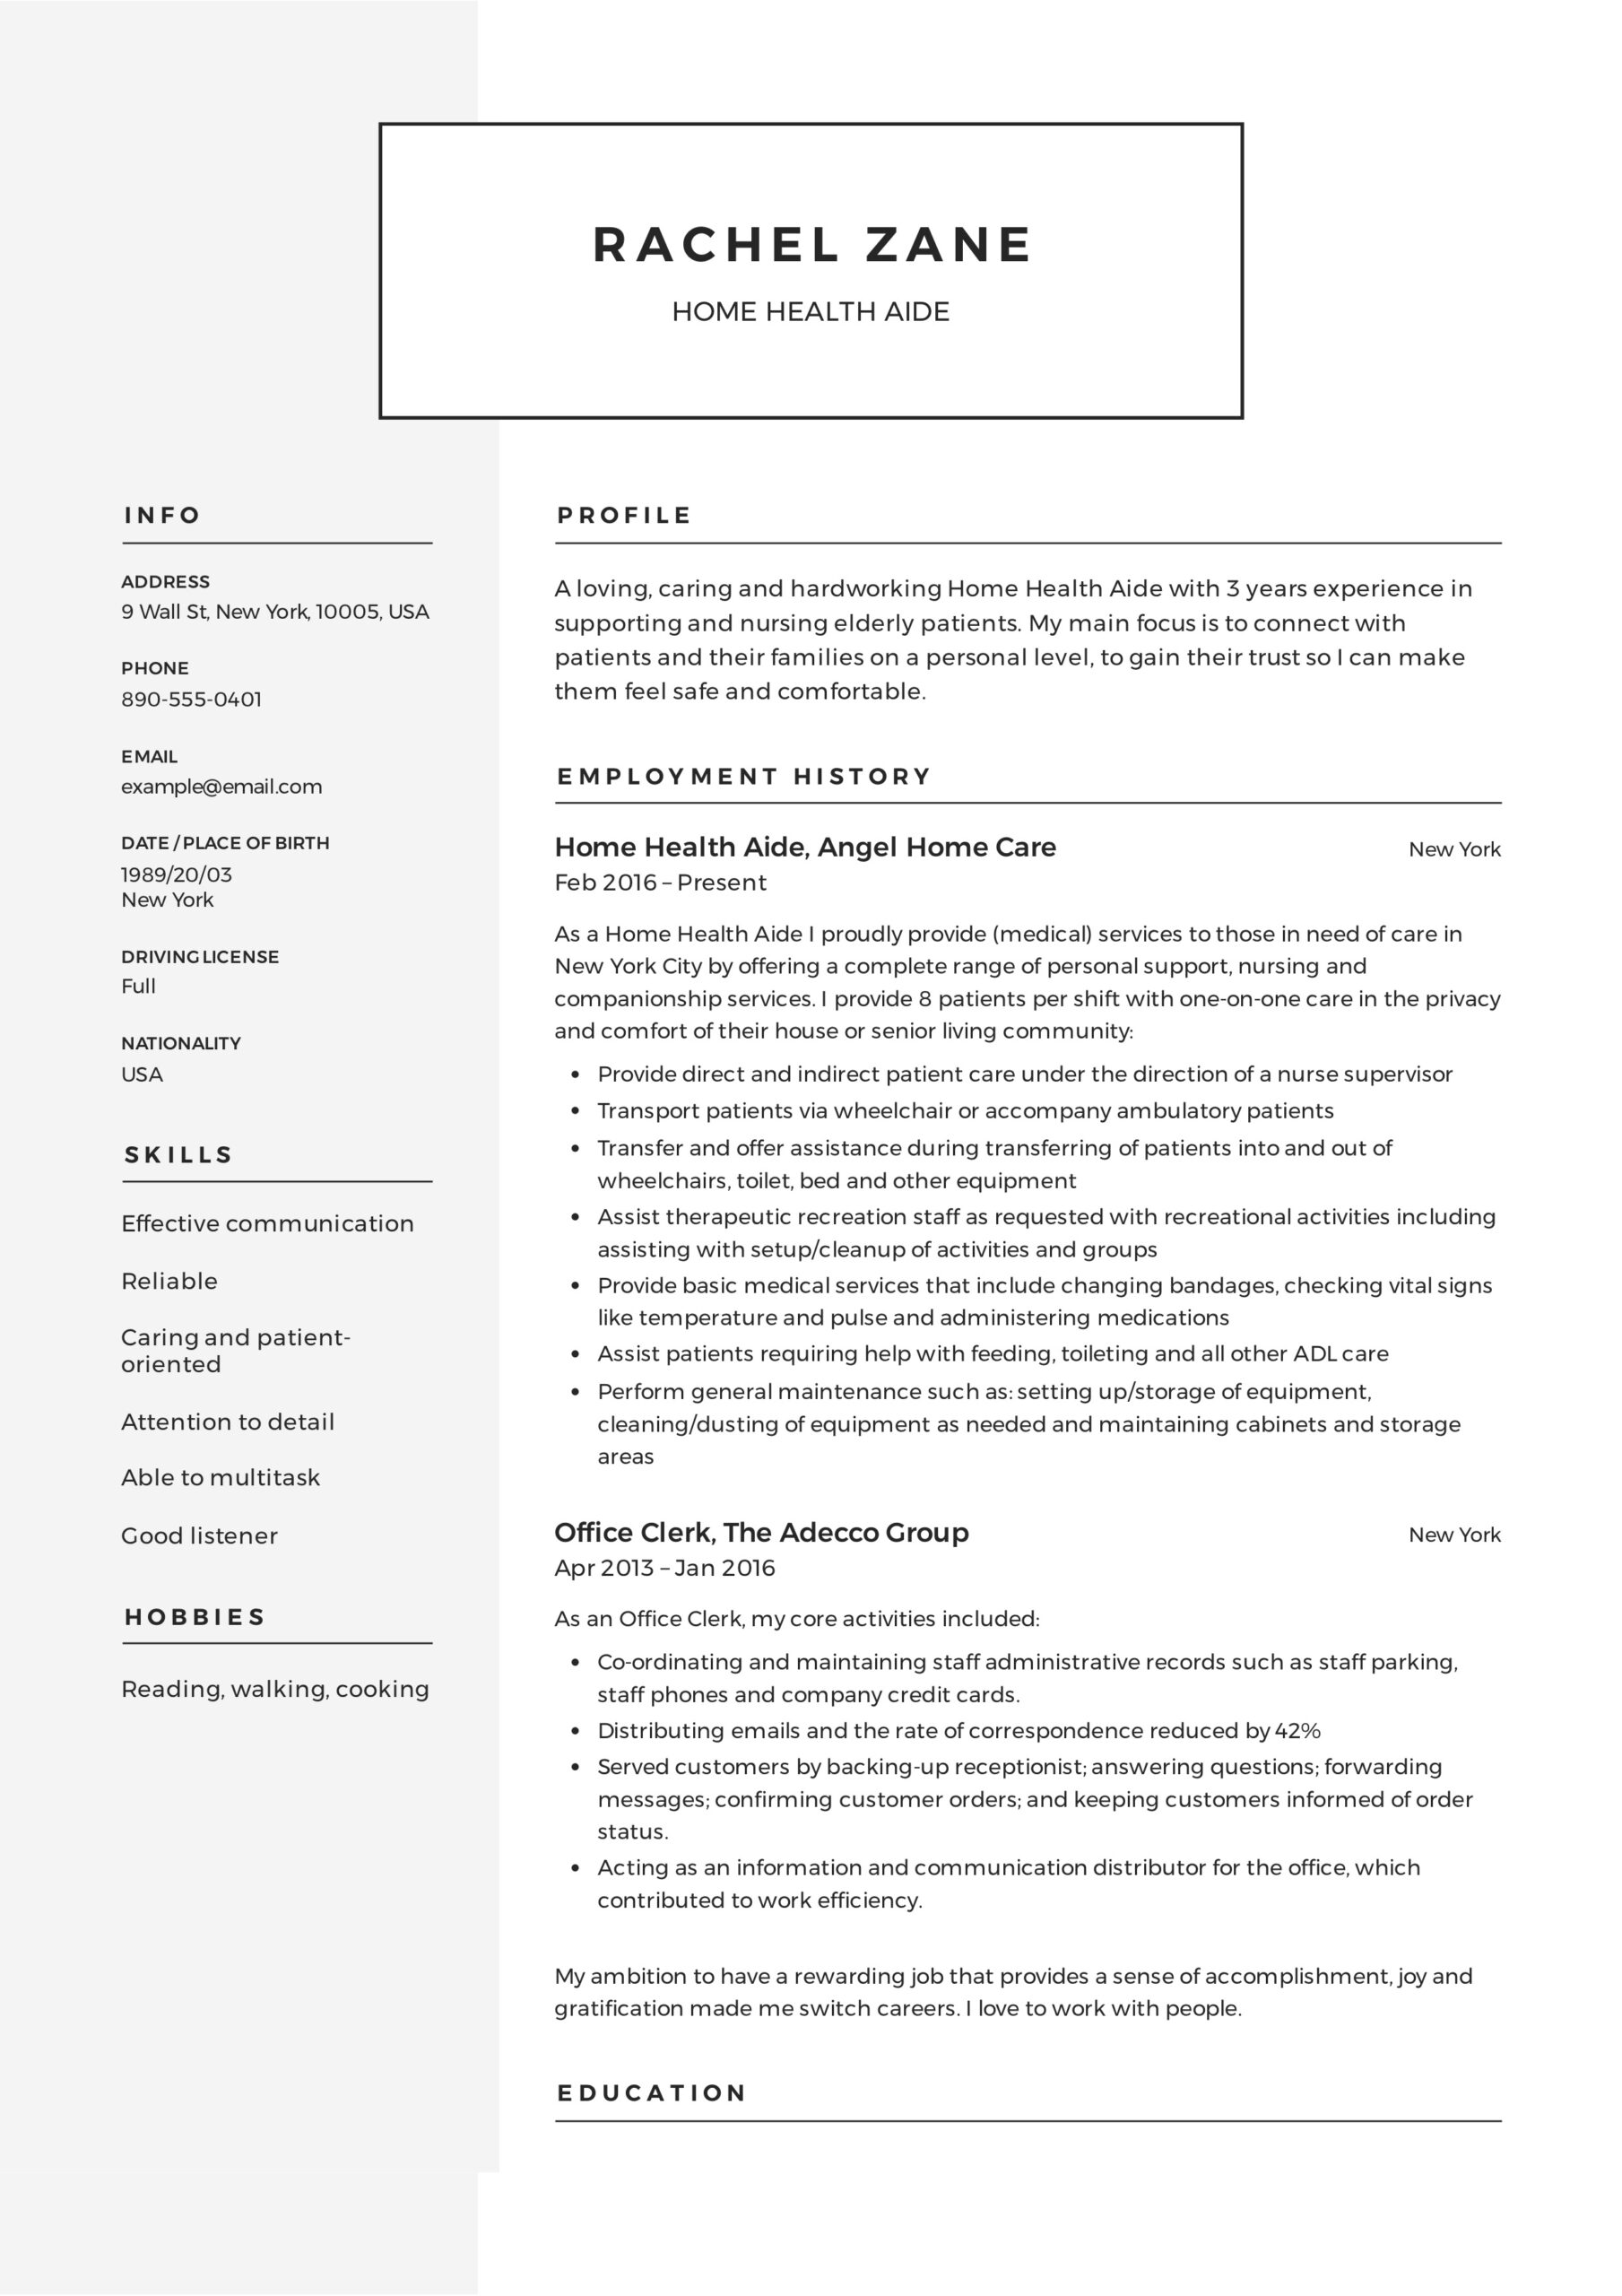 home health aide resume sample writing guide samples pdf job description for healt study Resume Home Health Aide Job Description For Resume